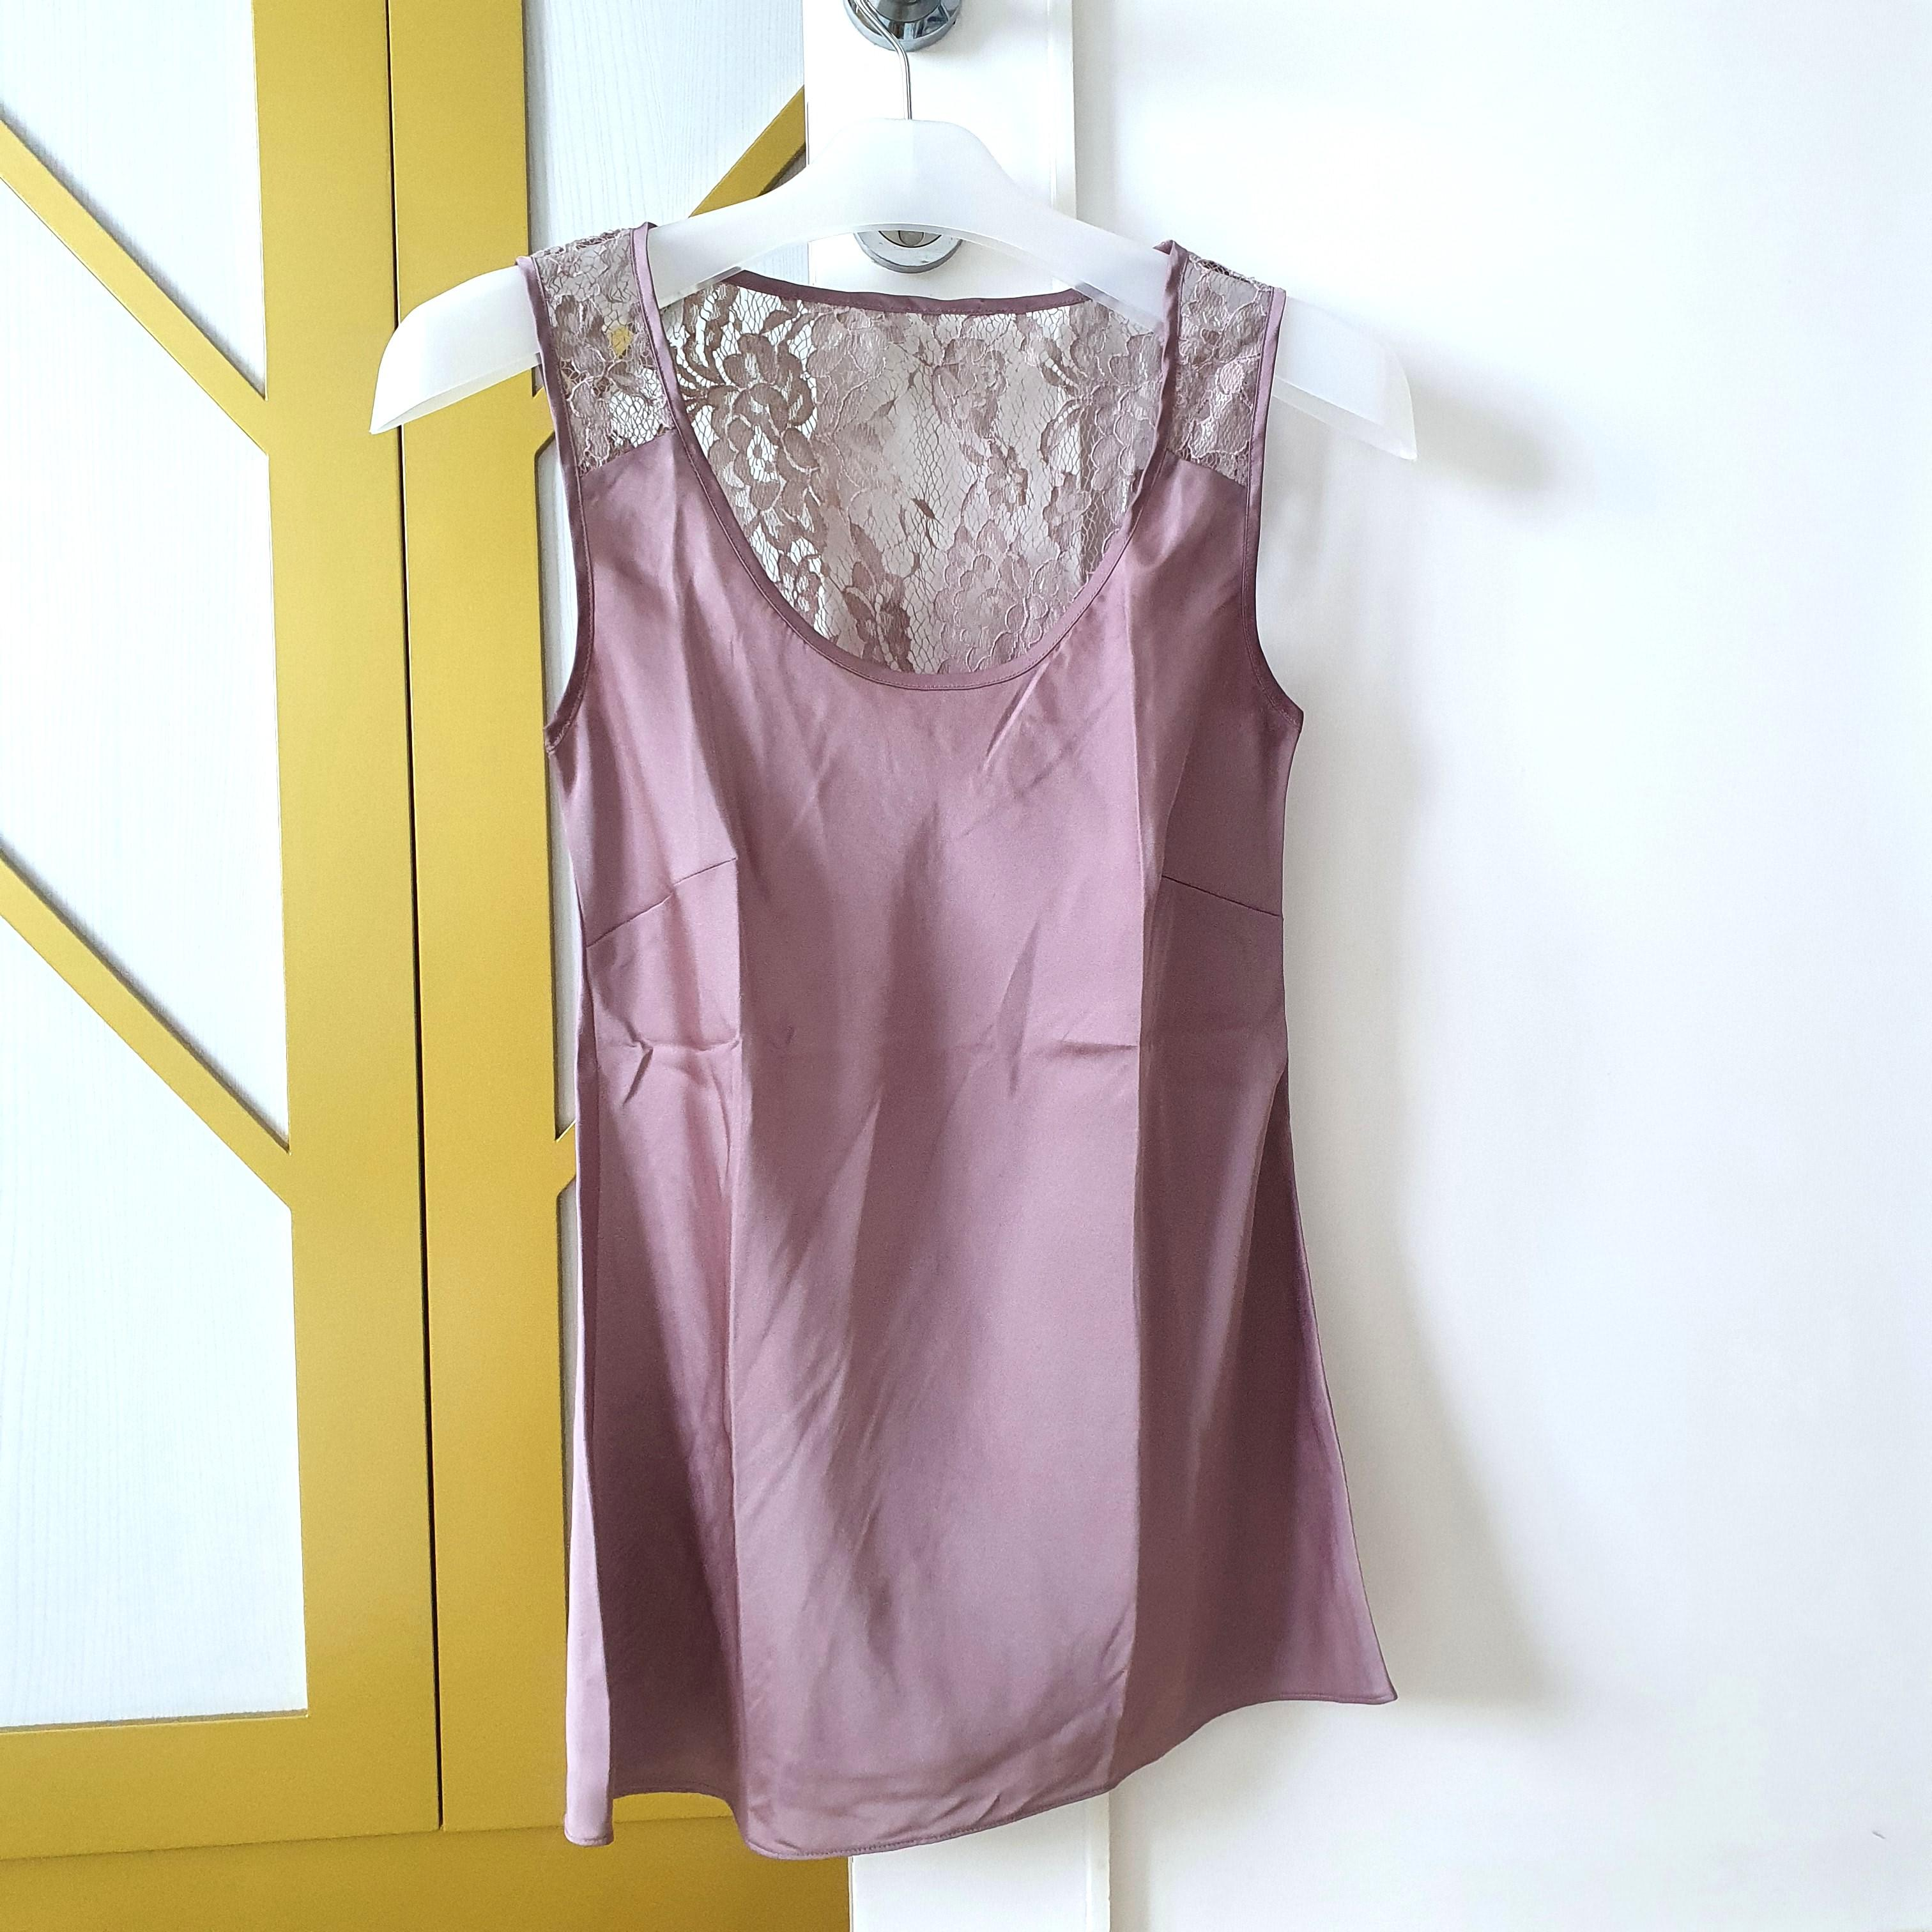 Coast lavender silk top